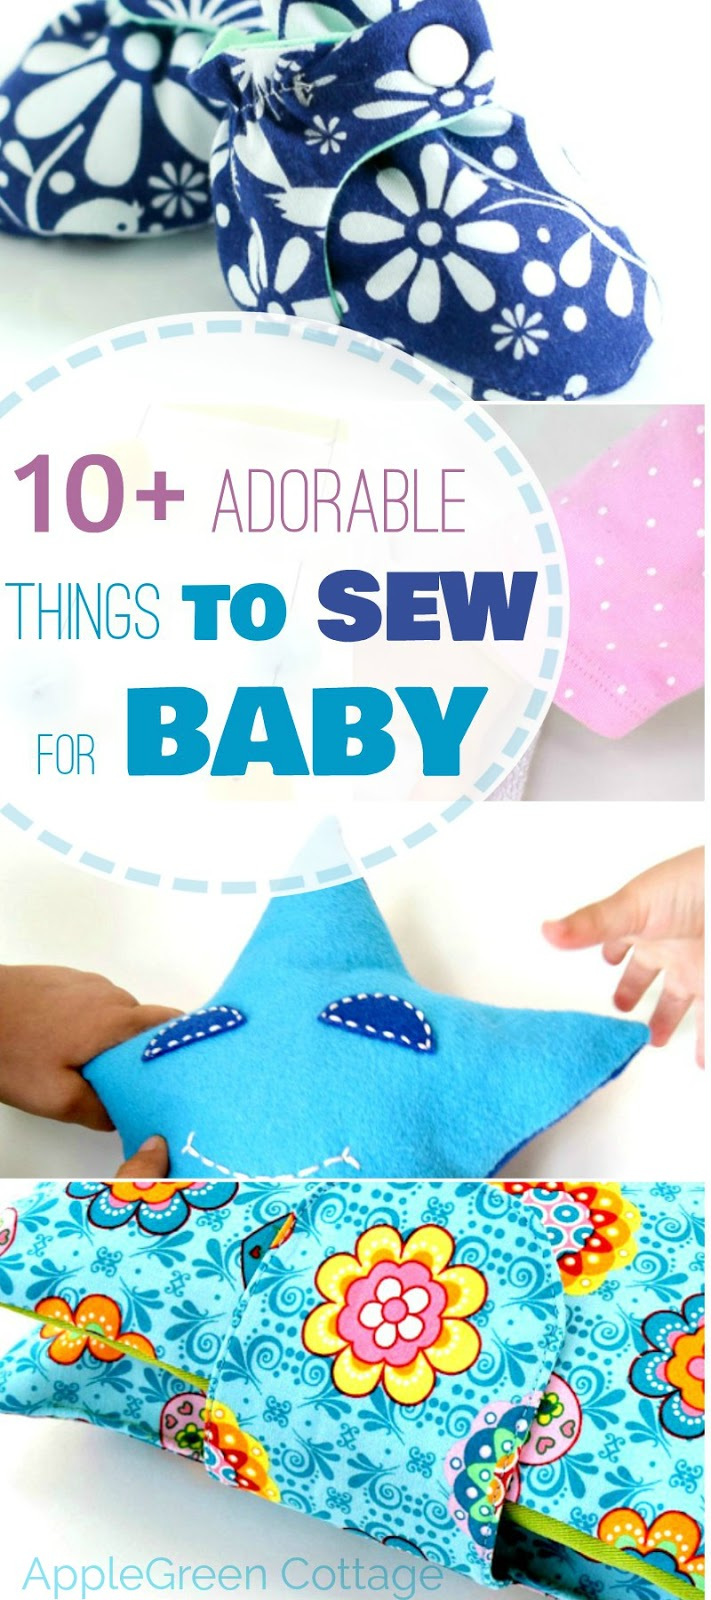 10 Adorable Things To Sew For Baby Applegreen Cottage